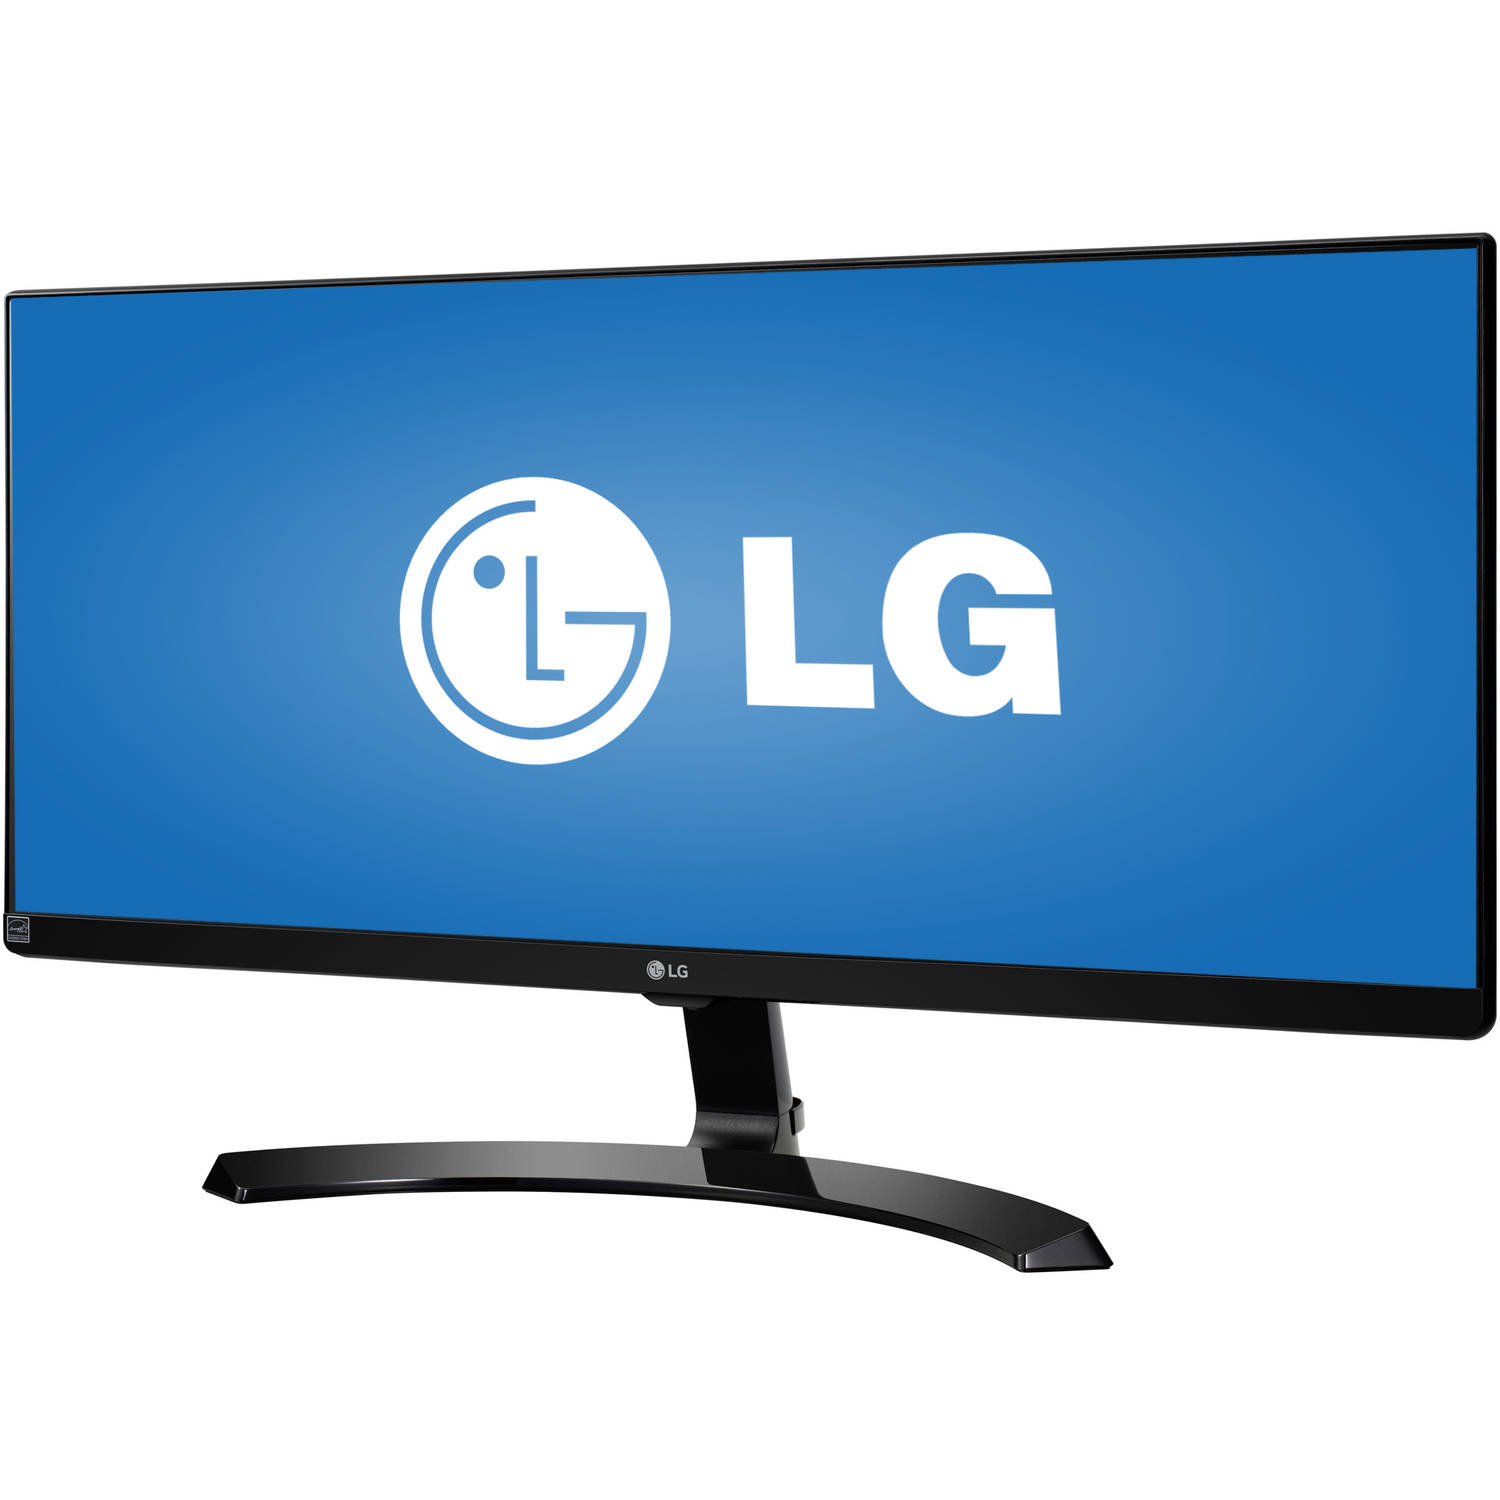 "LG 29"" UltraWide LED LCD Monitor (29UM68-P Black)"